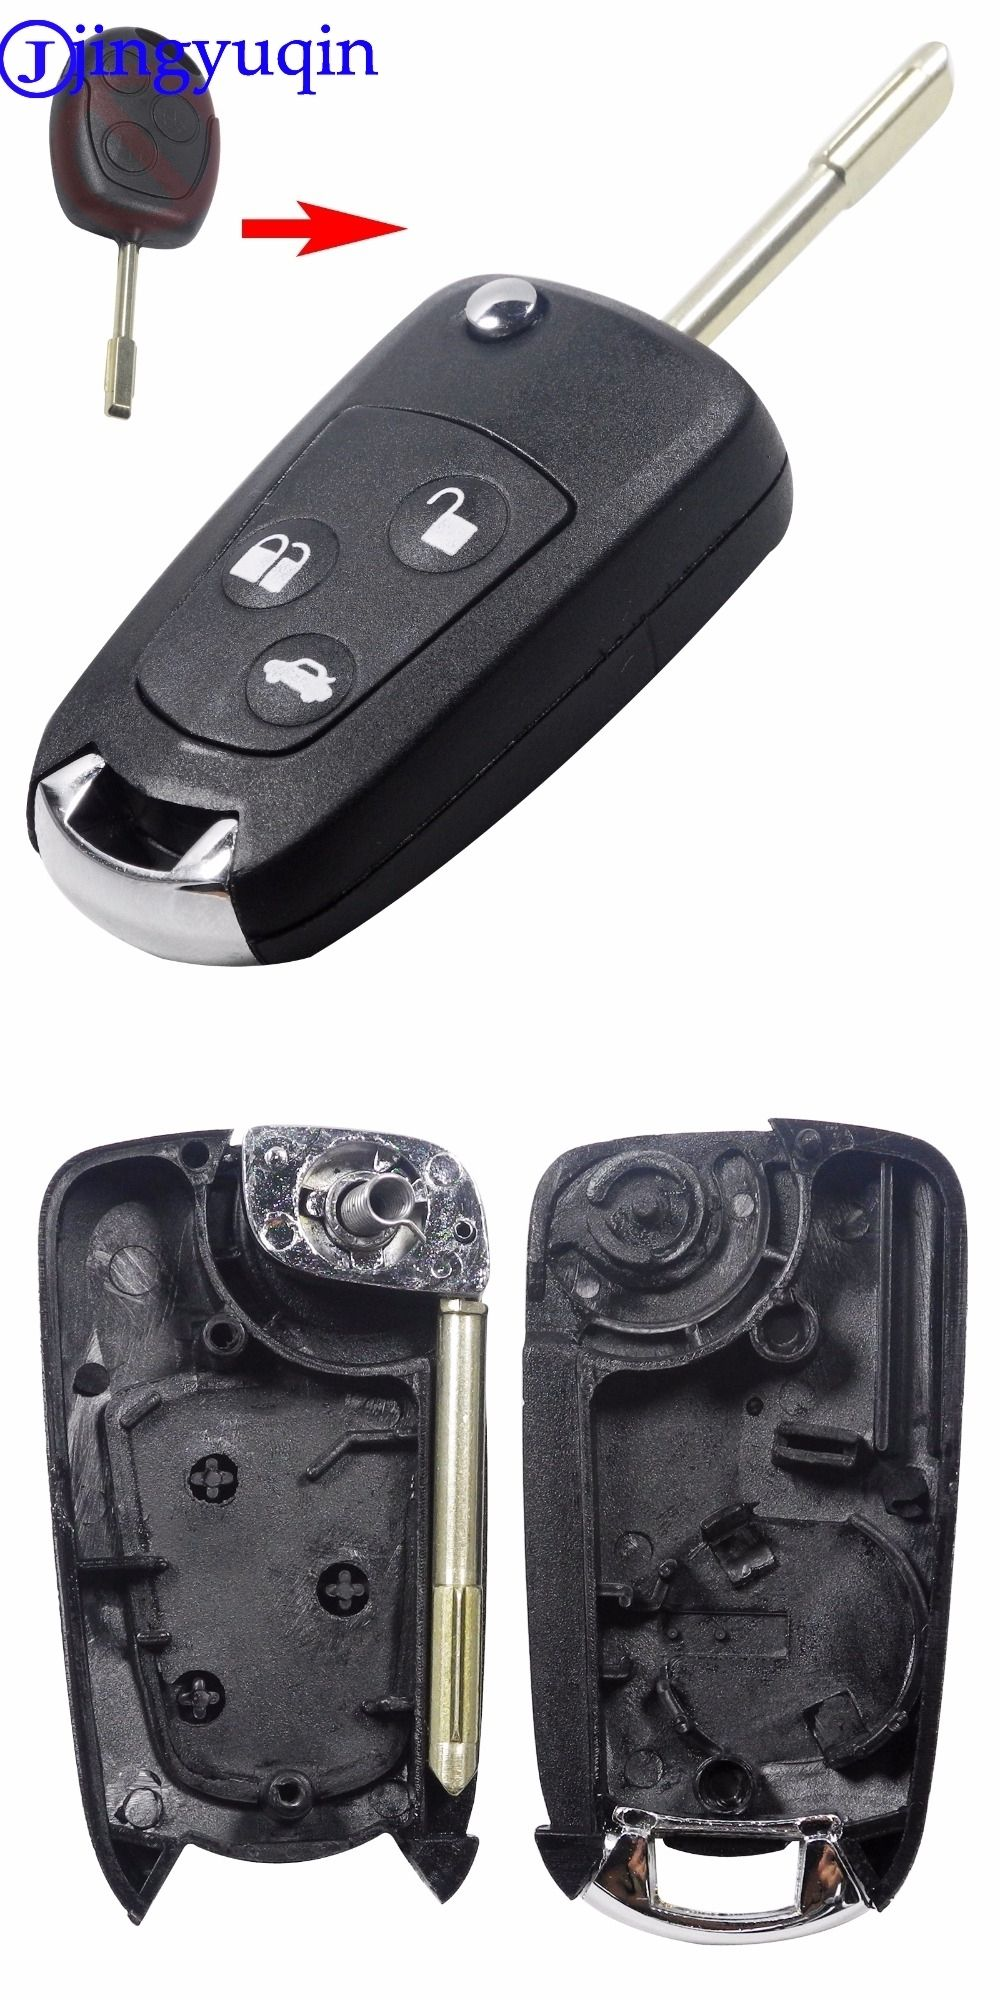 Jingyuqin  Buttons Refit Remote Folding Car Key Flip Shell Case Stying Cover For Ford Focus Ka Mondeo Uncut Blank Fob Auto Replacement Parts Pinterest